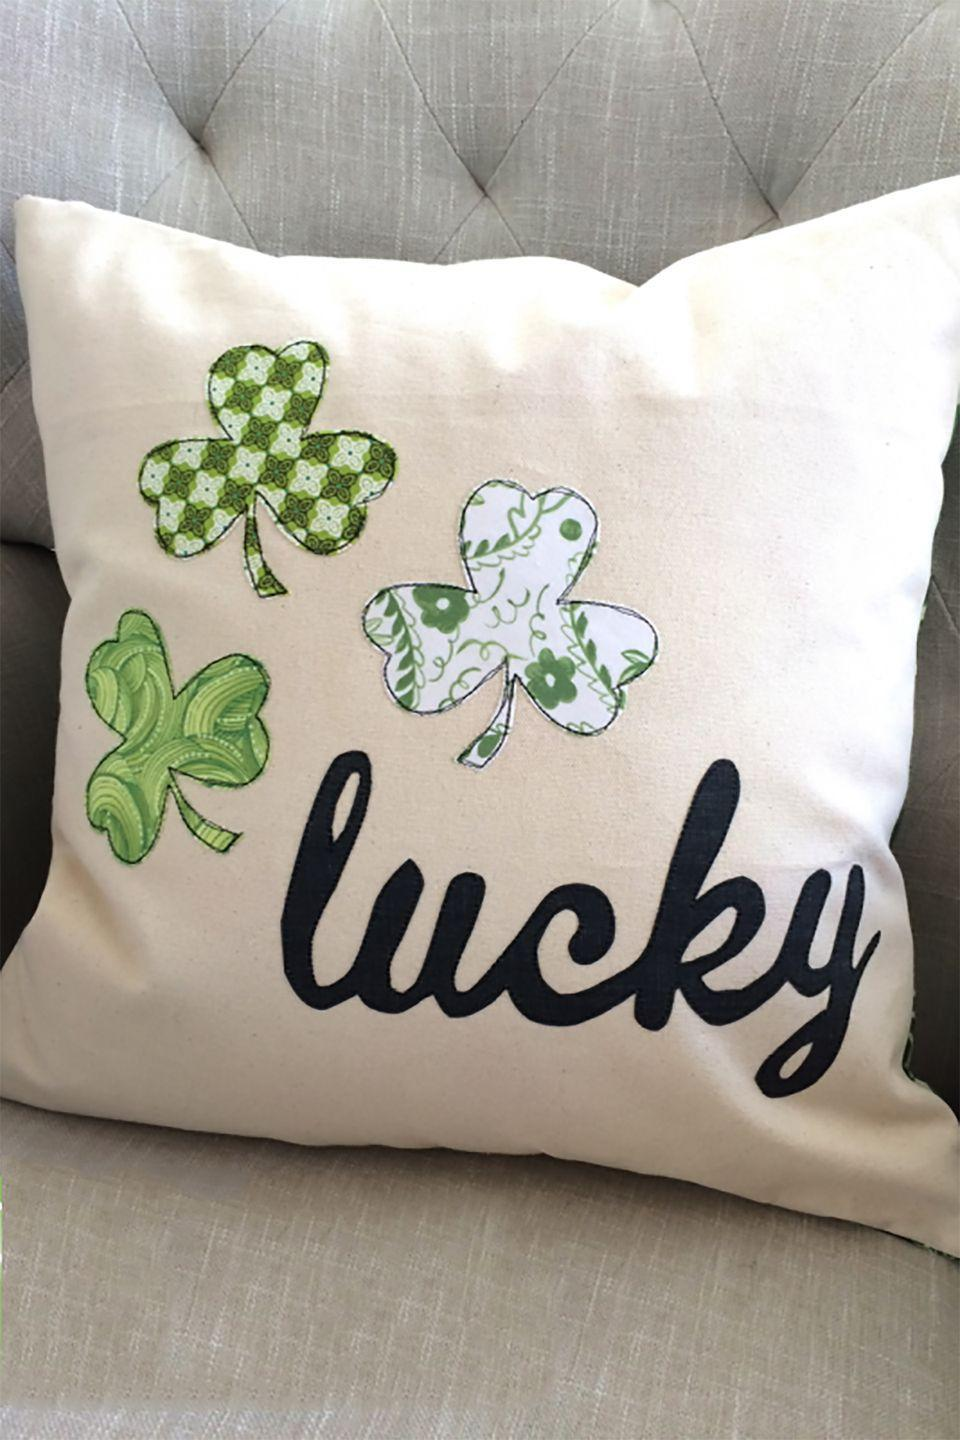 """<p>Add a pop of green to your couch with this adorable pillow cover. </p><p><strong>Get the tutorial at <a href=""""http://www.jedicraftgirl.com/2015/03/lucky-pillow-version-2-0.html"""" rel=""""nofollow noopener"""" target=""""_blank"""" data-ylk=""""slk:Jedi Craft Girl"""" class=""""link rapid-noclick-resp"""">Jedi Craft Girl</a>. </strong></p><p><a class=""""link rapid-noclick-resp"""" href=""""https://www.amazon.com/Lunarable-Patricks-Pattern-Decorative-Upholstery/dp/B07MMQPV56/ref=sr_1_48?tag=syn-yahoo-20&ascsubtag=%5Bartid%7C10050.g.4036%5Bsrc%7Cyahoo-us"""" rel=""""nofollow noopener"""" target=""""_blank"""" data-ylk=""""slk:SHOP FABRIC"""">SHOP FABRIC</a><br></p>"""